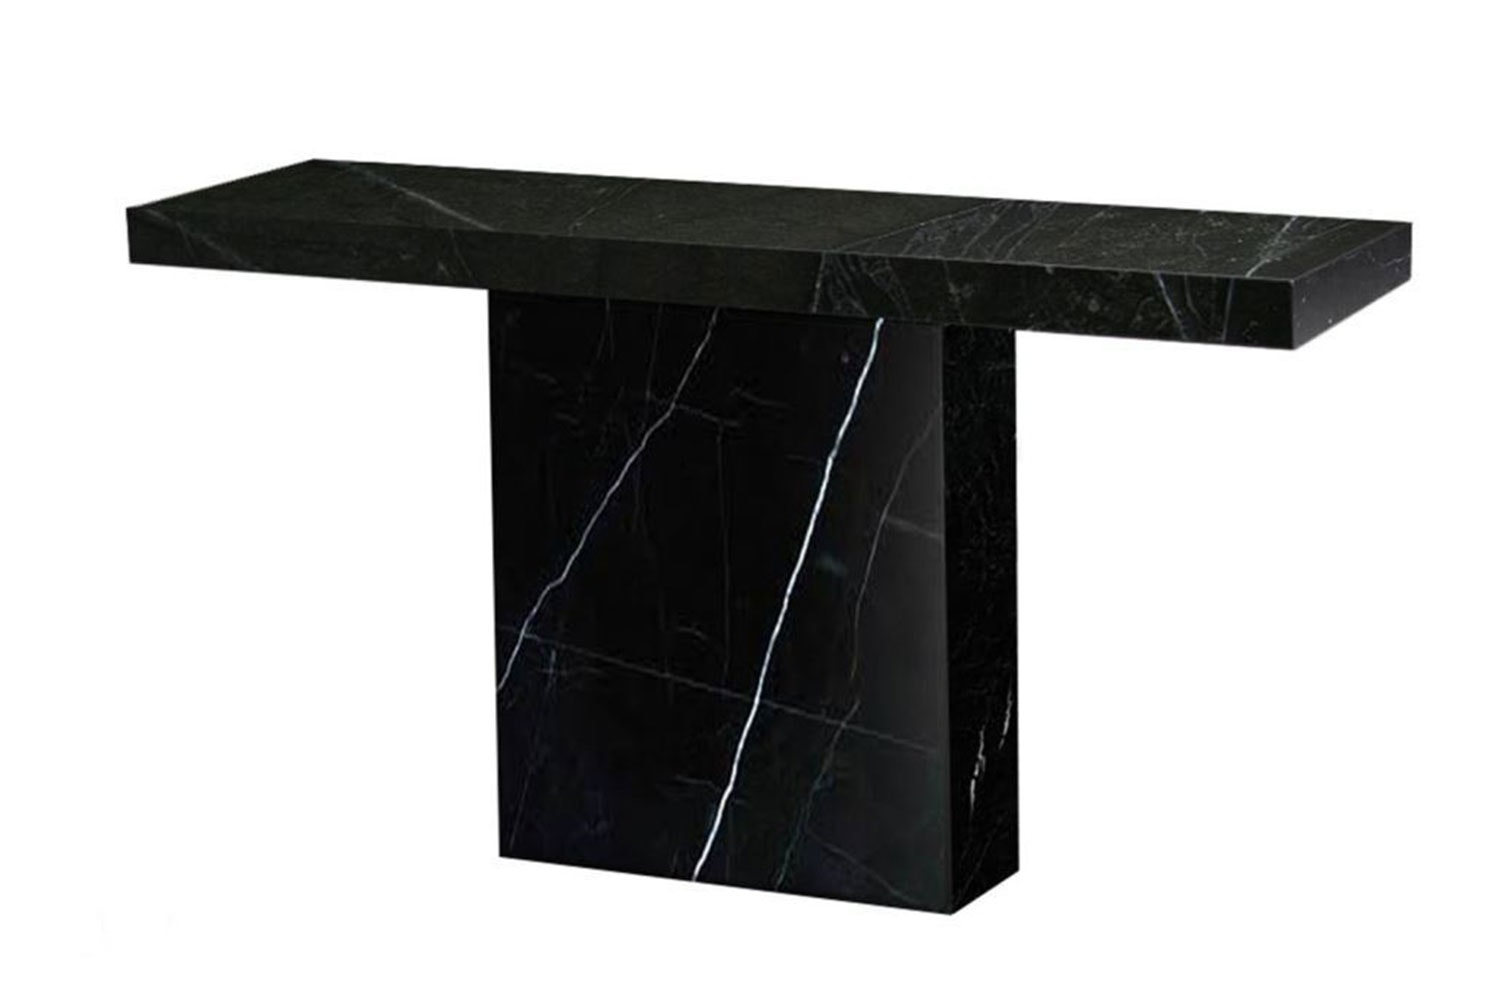 Noche2 Console Table by Collage